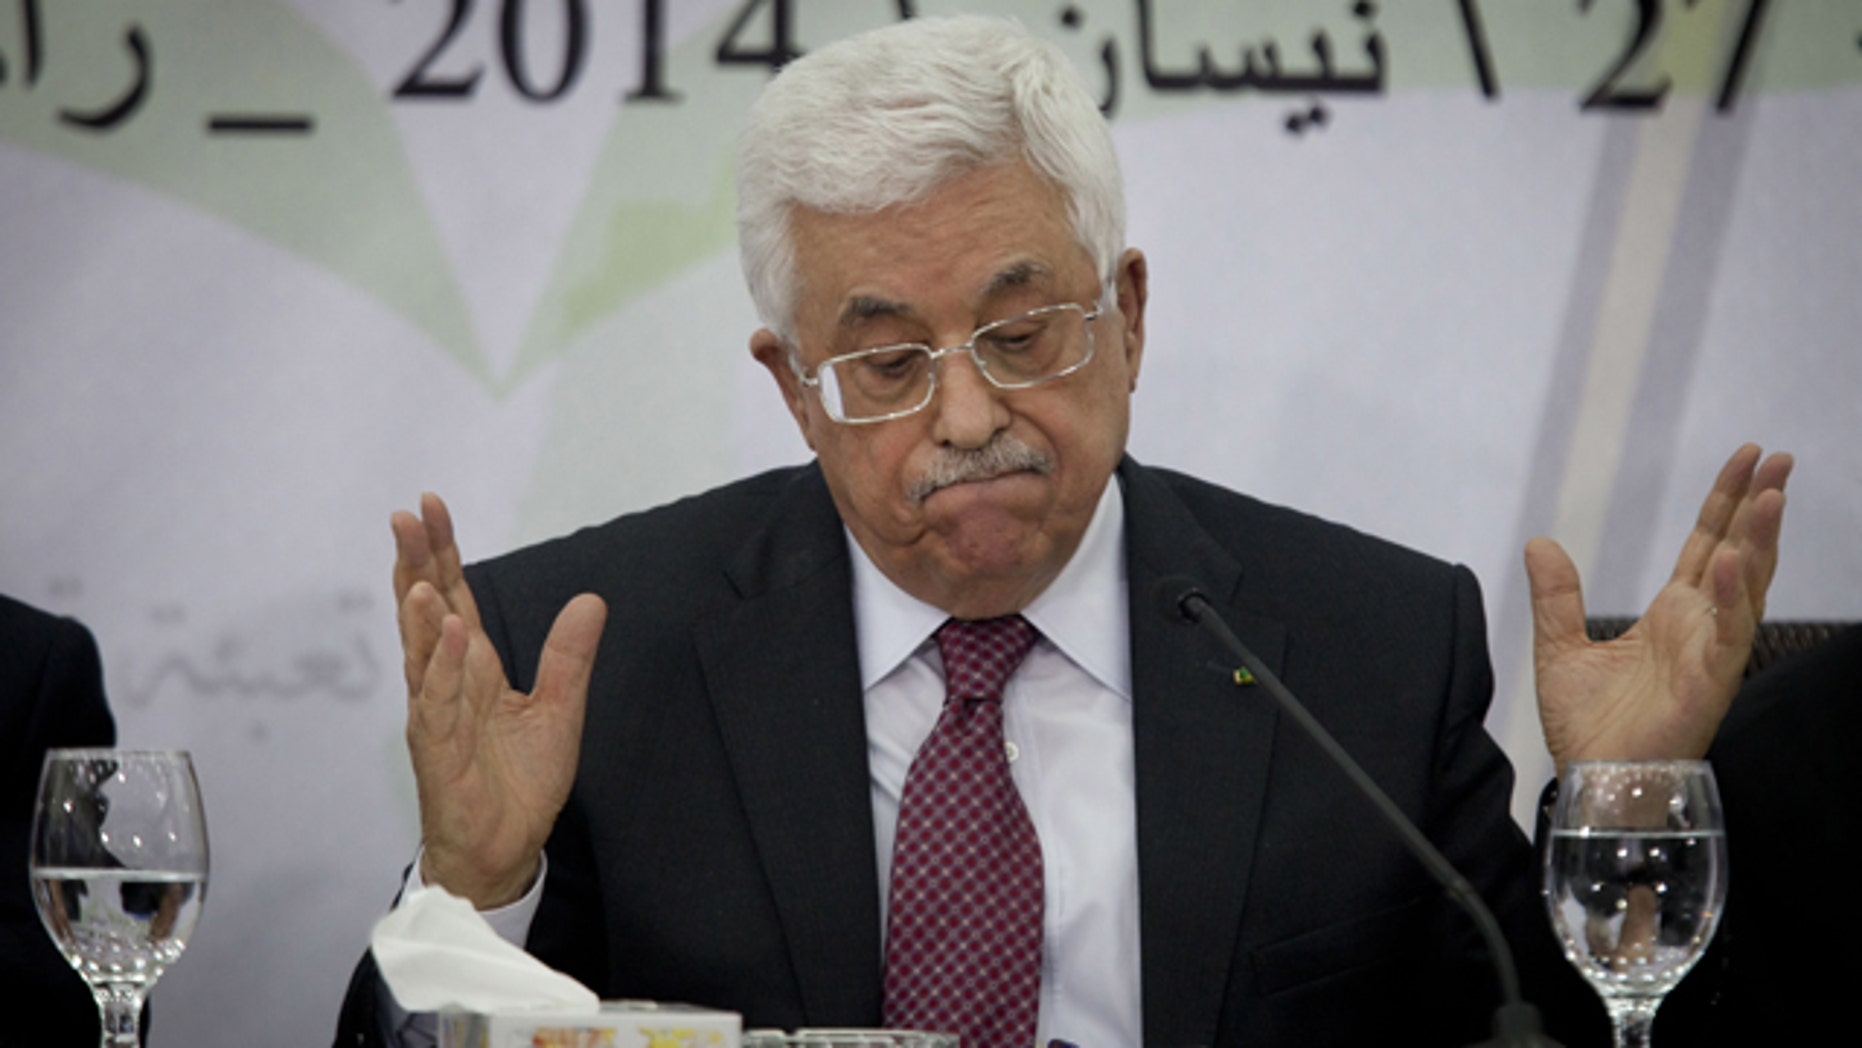 April 26, 2014: Palestinian President Mahmoud Abbas speaks during a meeting with the Palestinian Central Council, a top decision-making body, at his headquarters in the West Bank city of Ramallah.